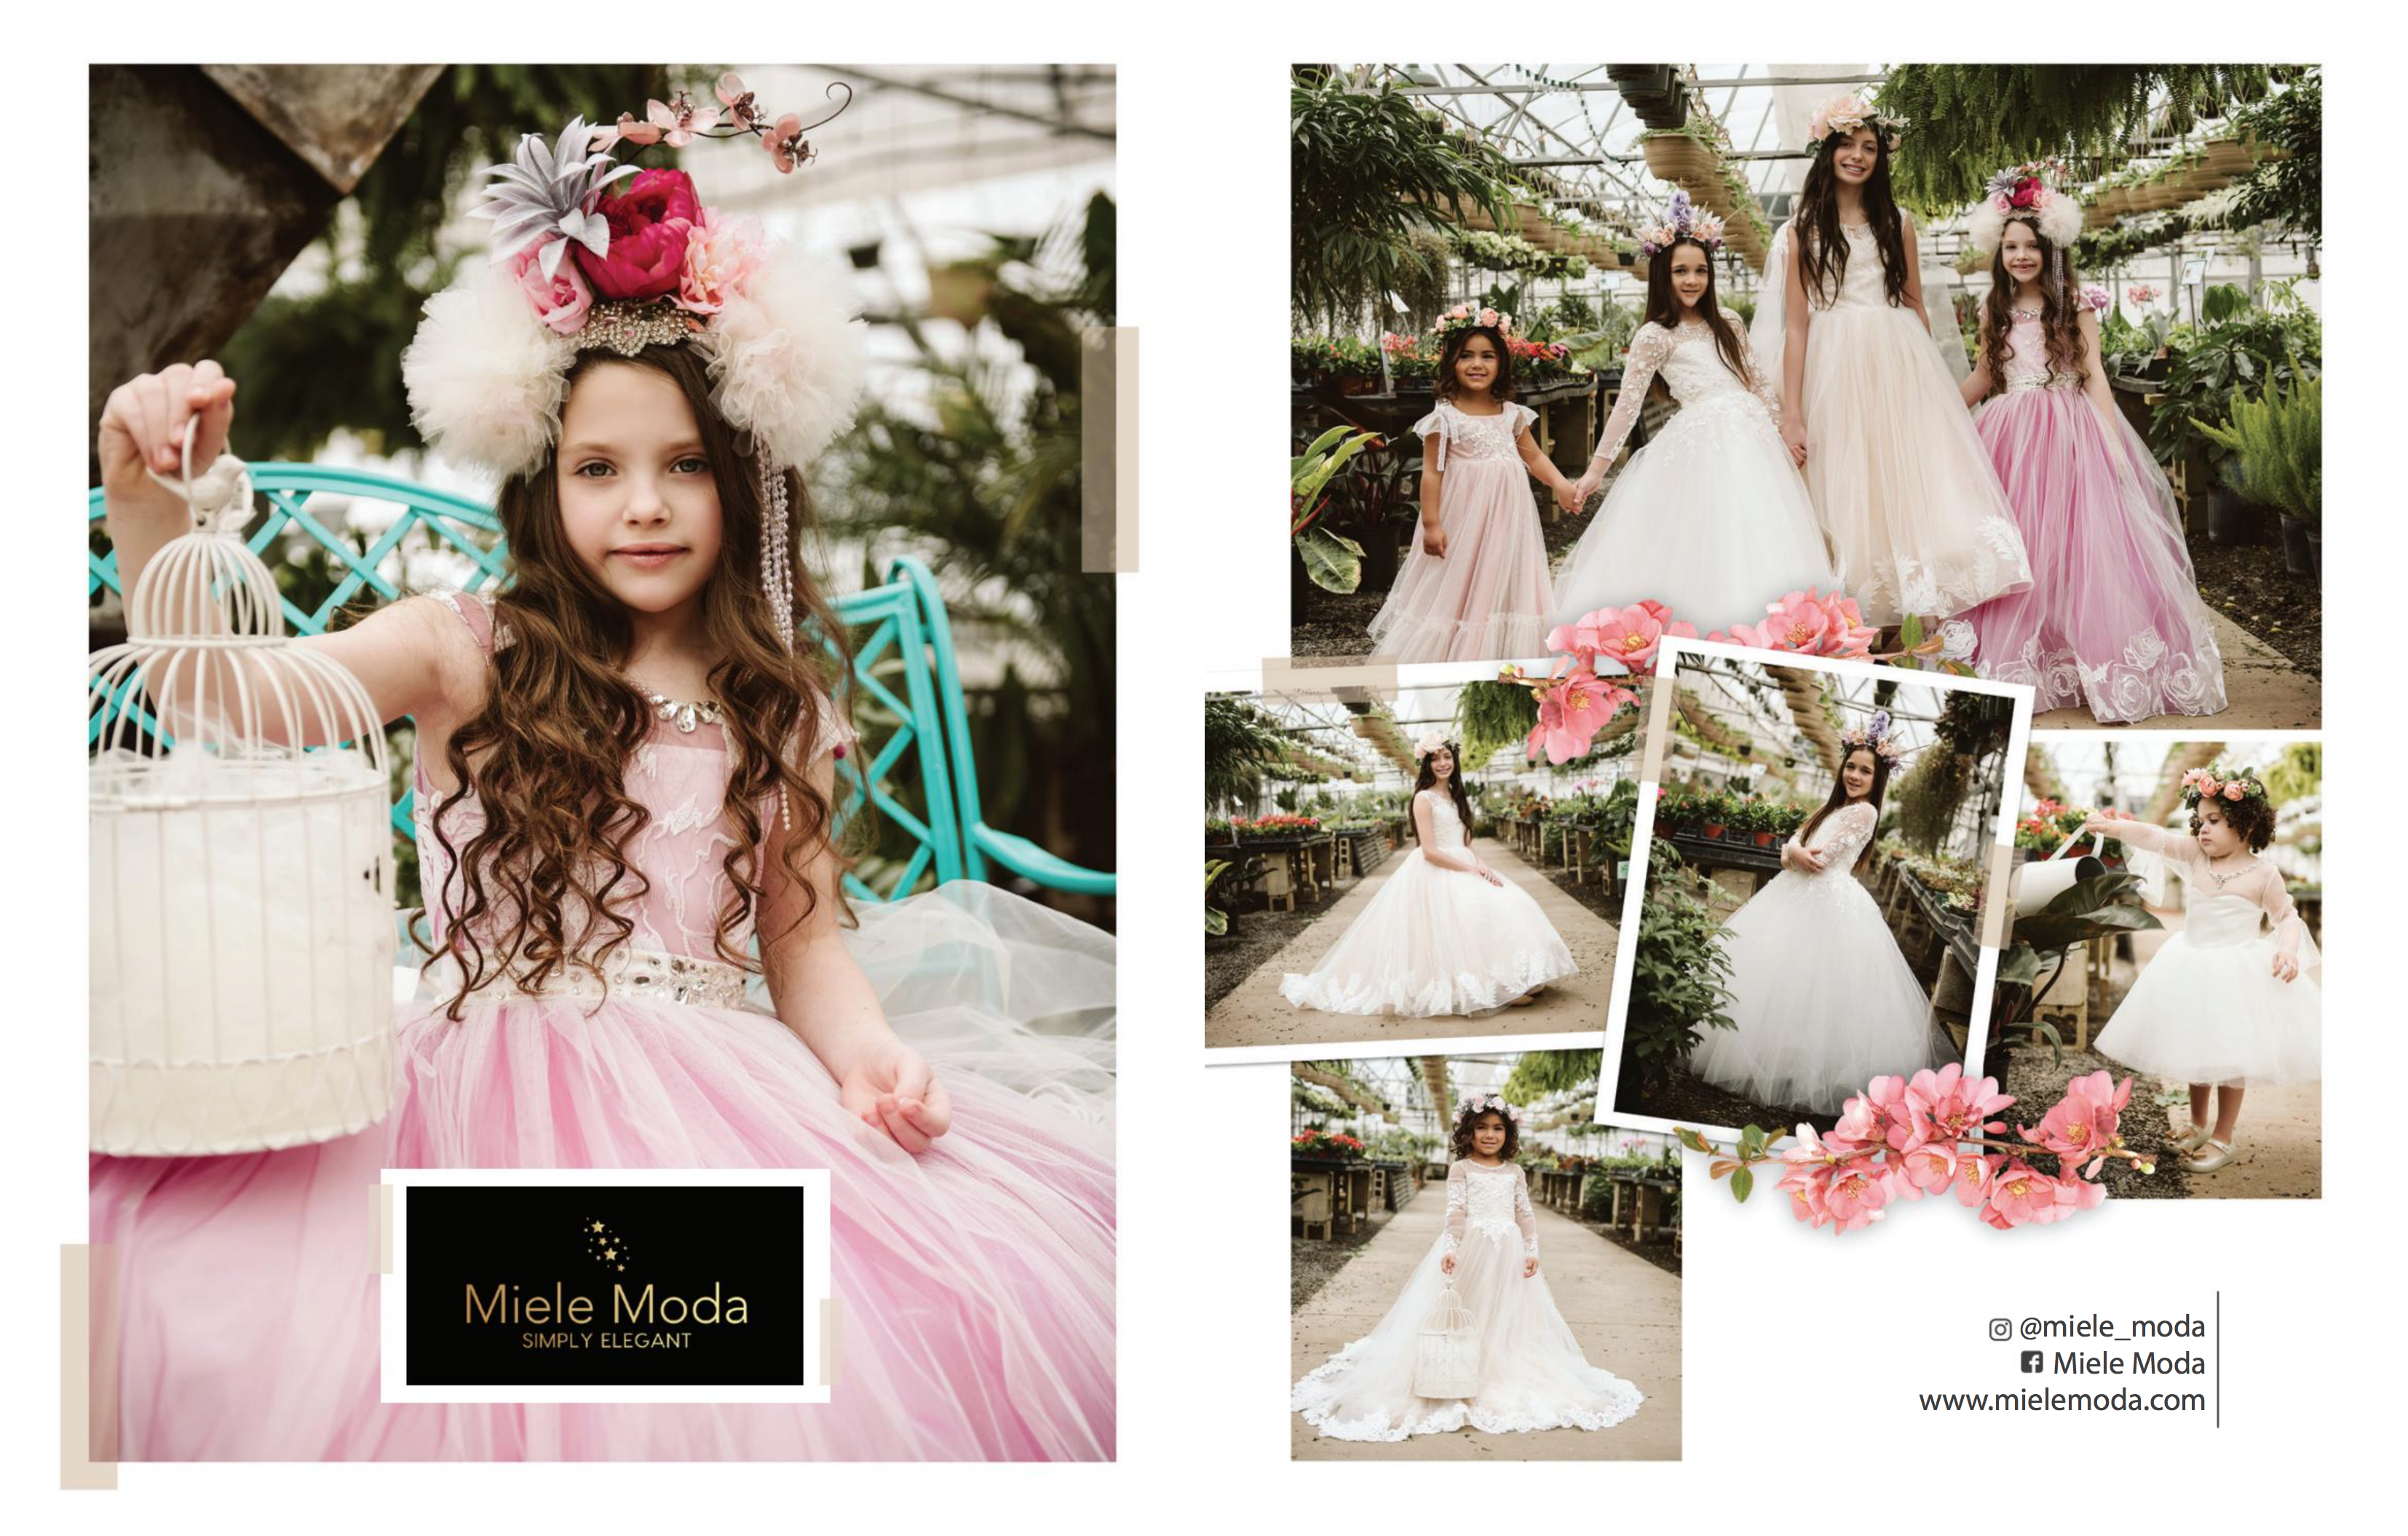 Child Fashion Photoshoots with KidFash Magazine